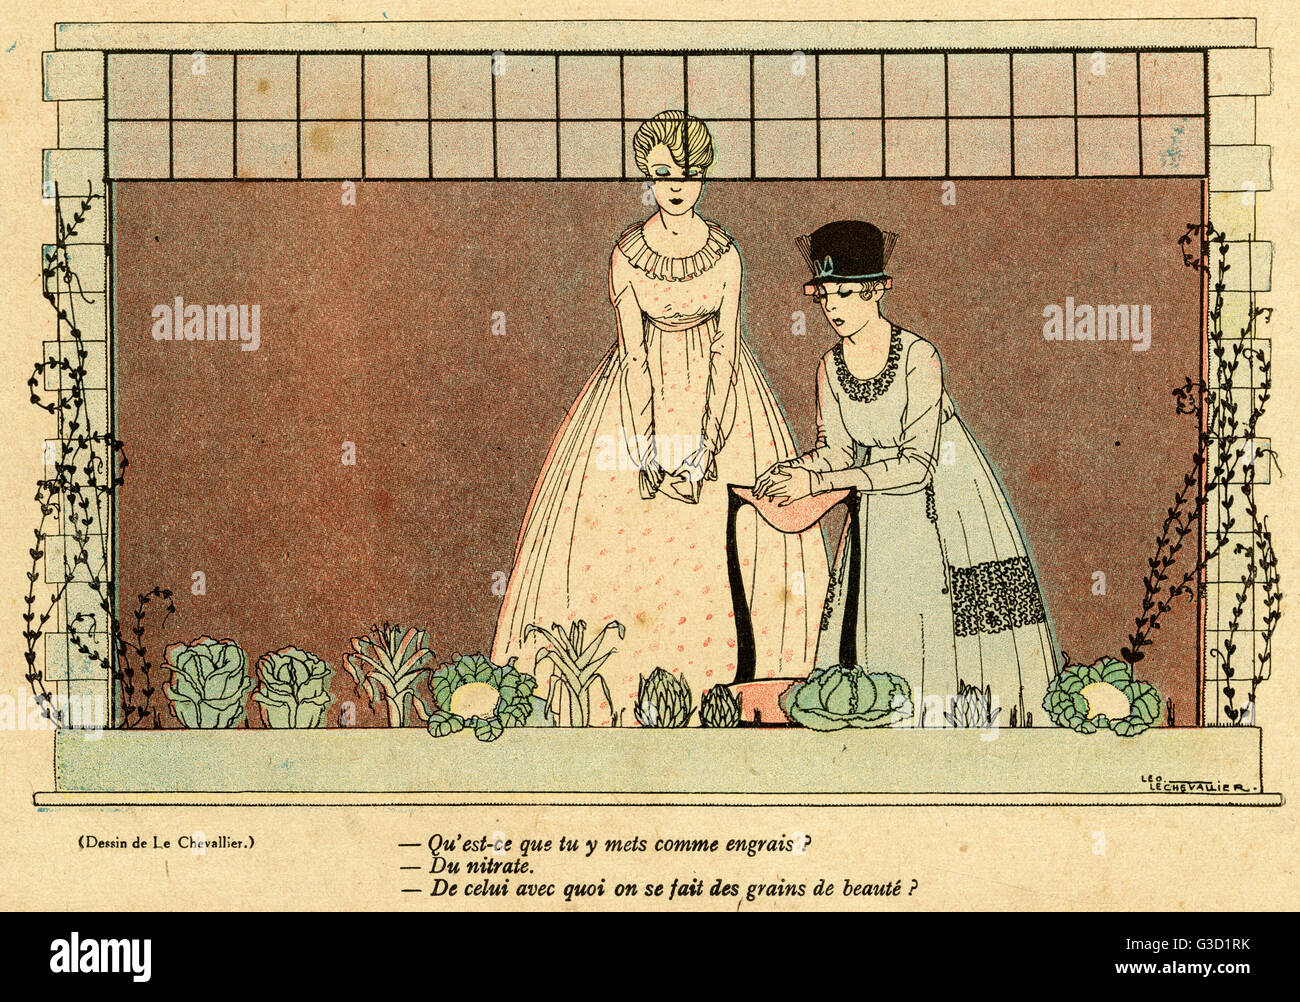 Cartoon, Growing vegetables. Two fashionable young women inspect a ...